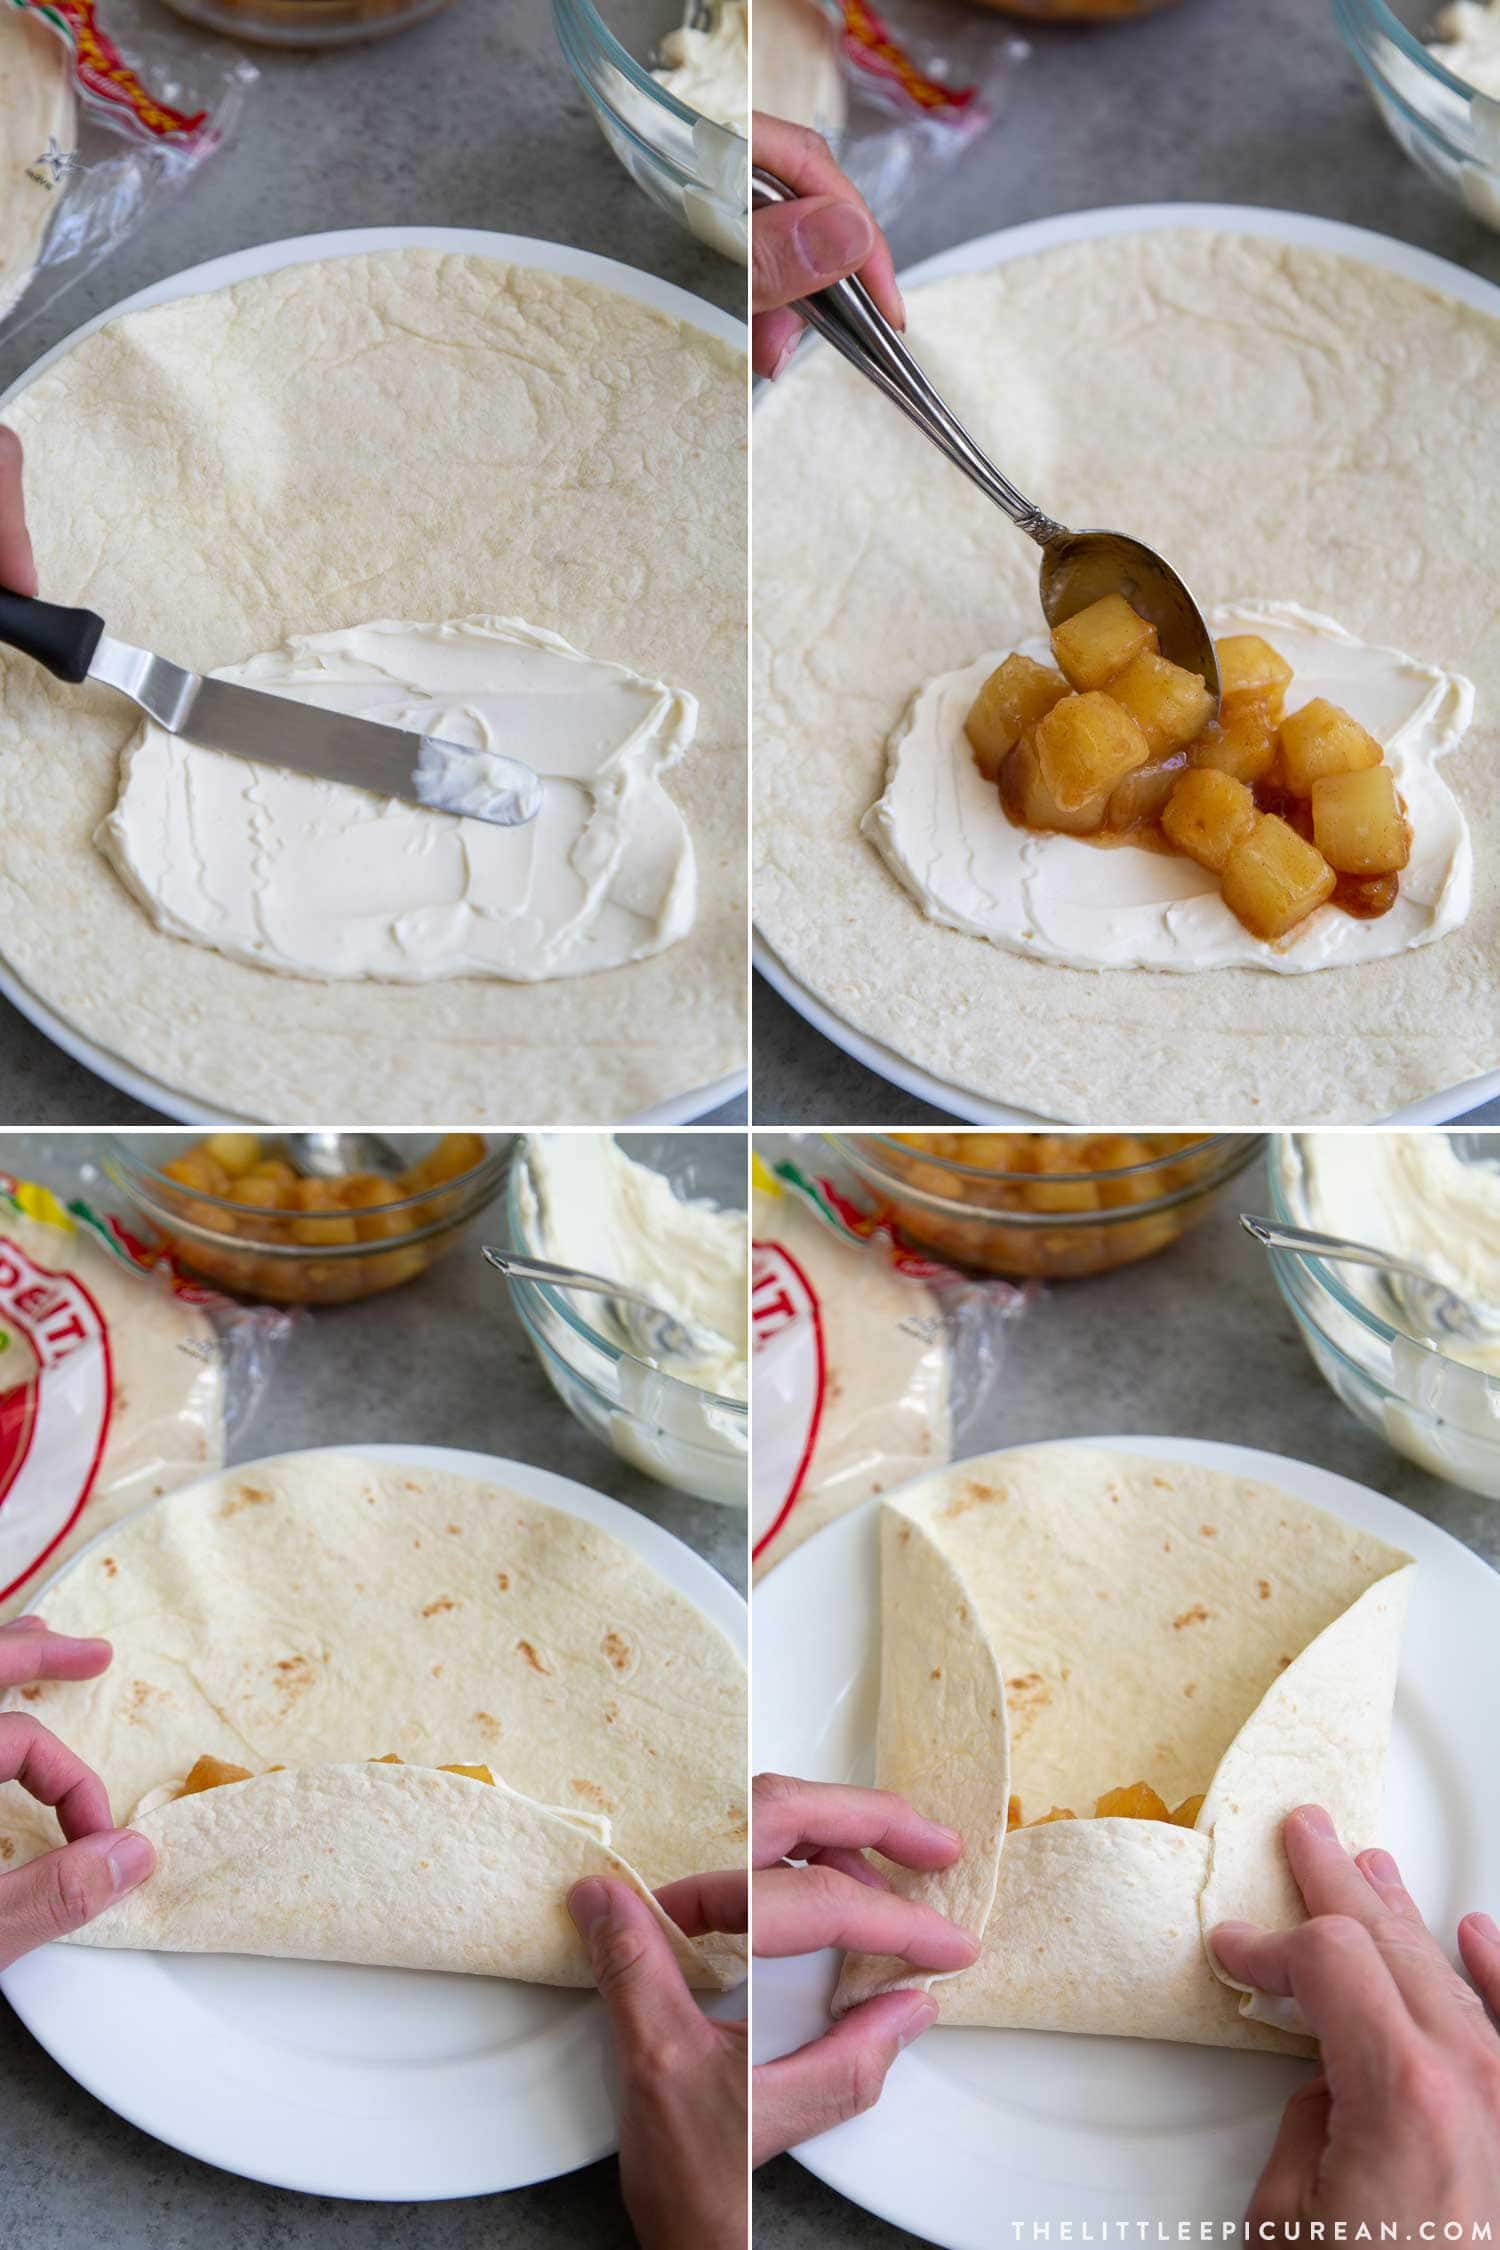 How to assemble pineapple cheesecake chimichangas